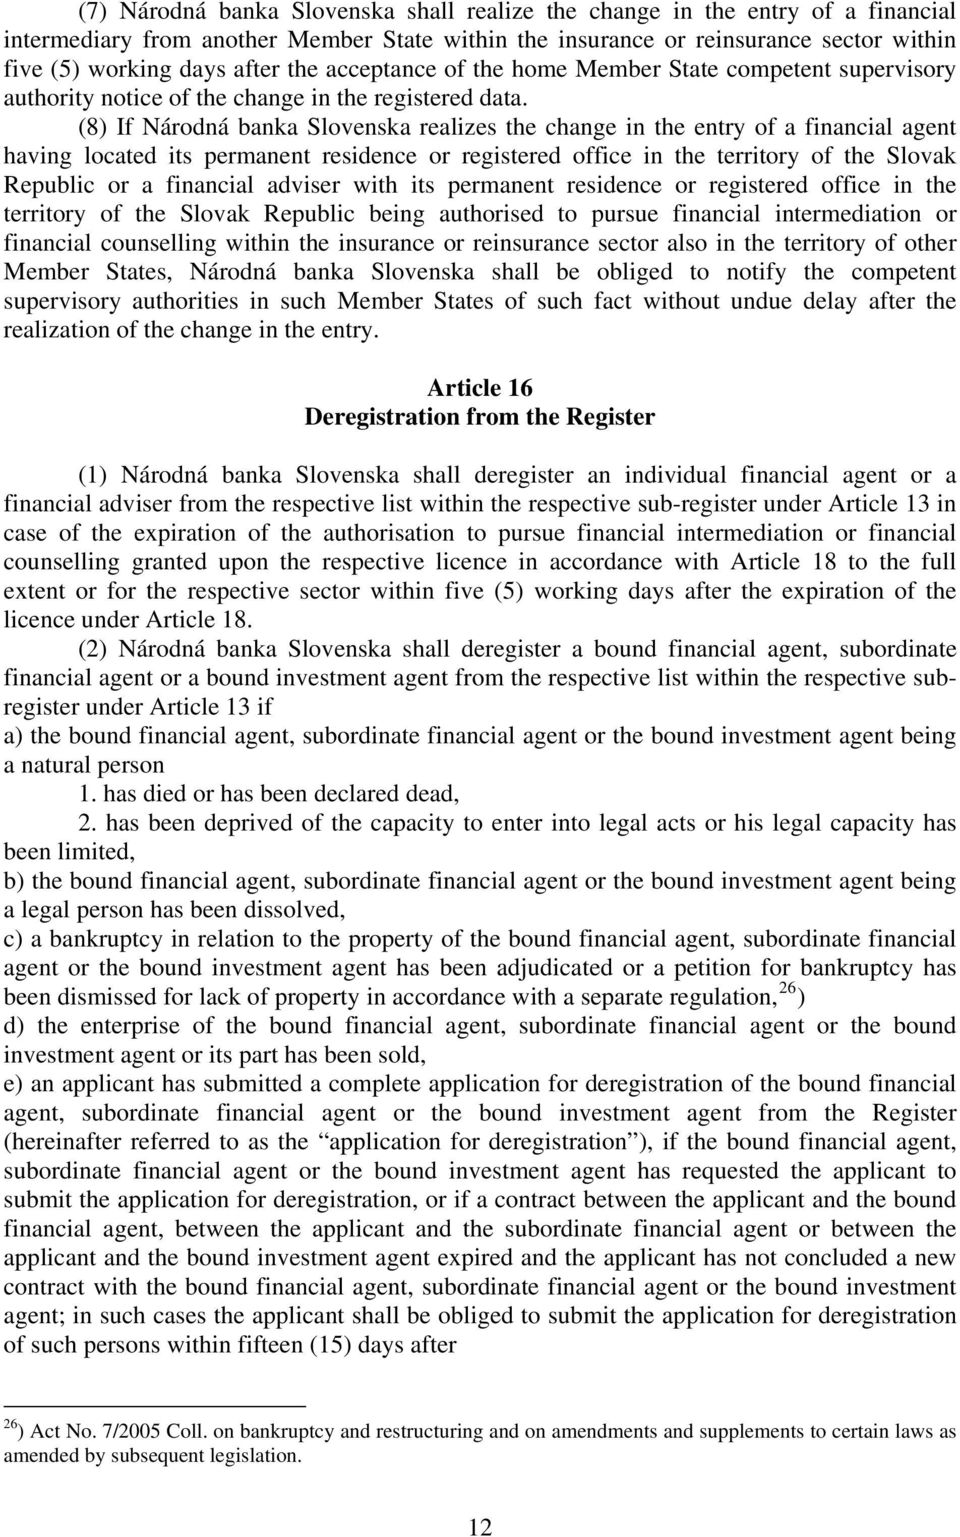 (8) If Národná banka Slovenska realizes the change in the entry of a financial agent having located its permanent residence or registered office in the territory of the Slovak Republic or a financial